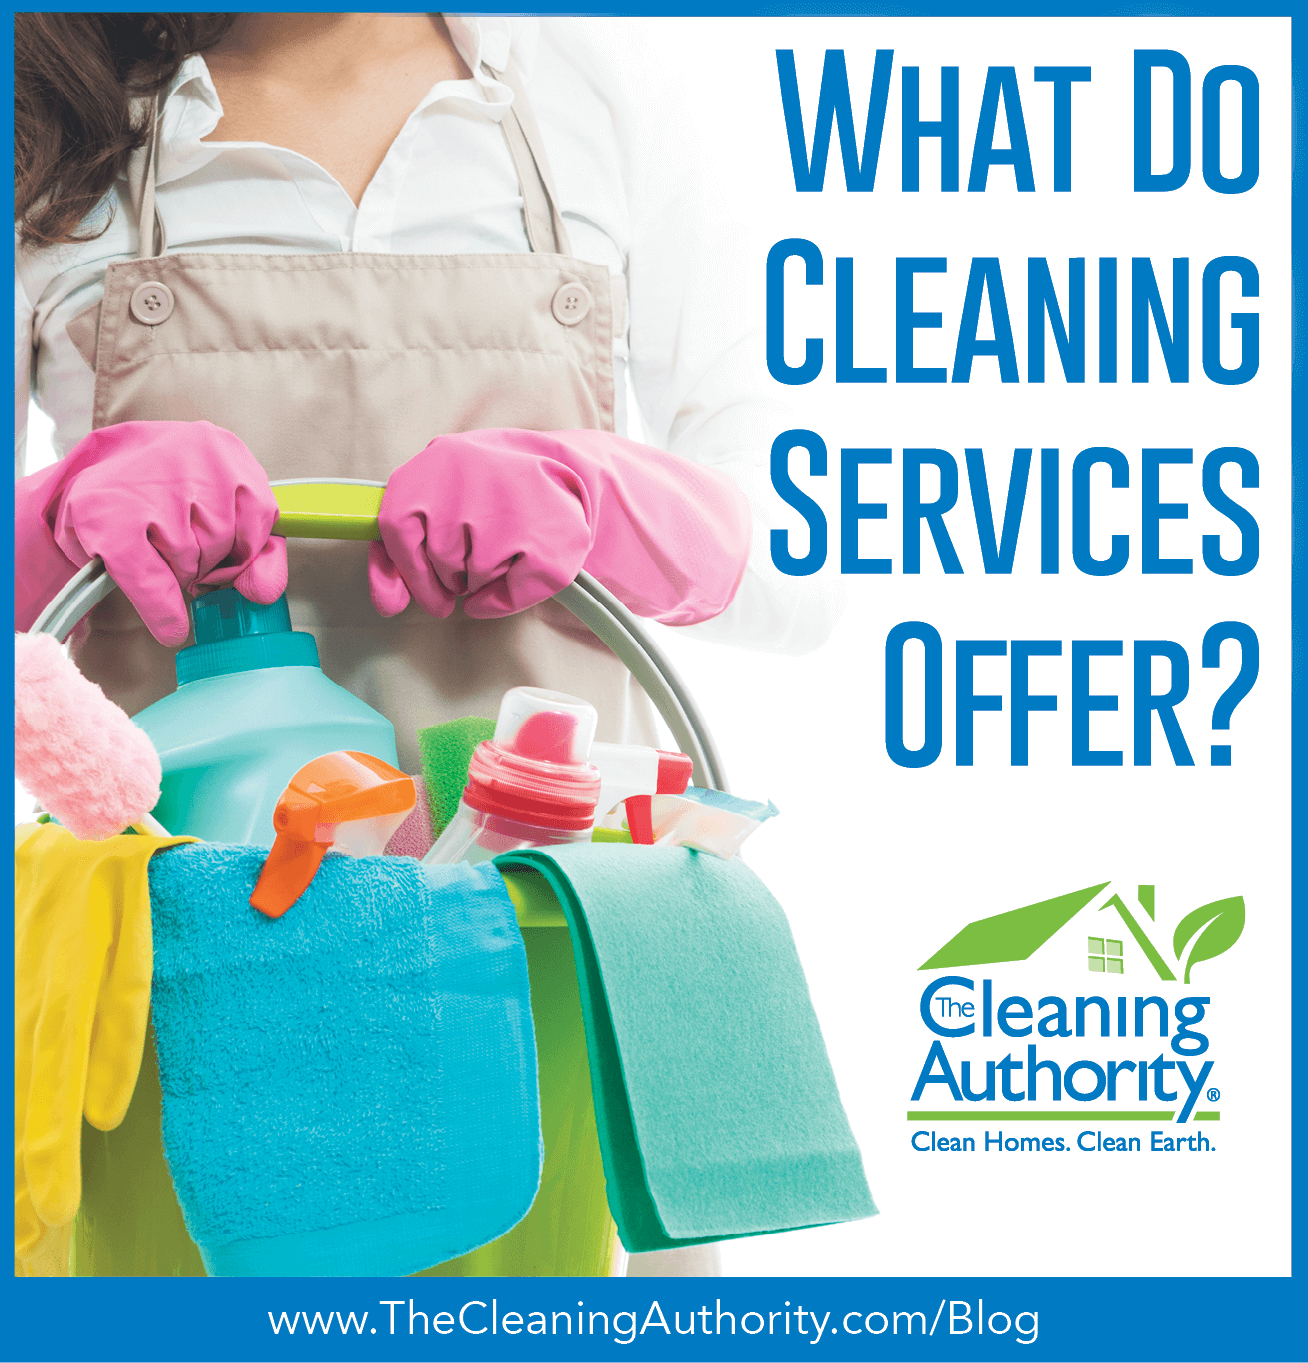 What do cleaning services offer?